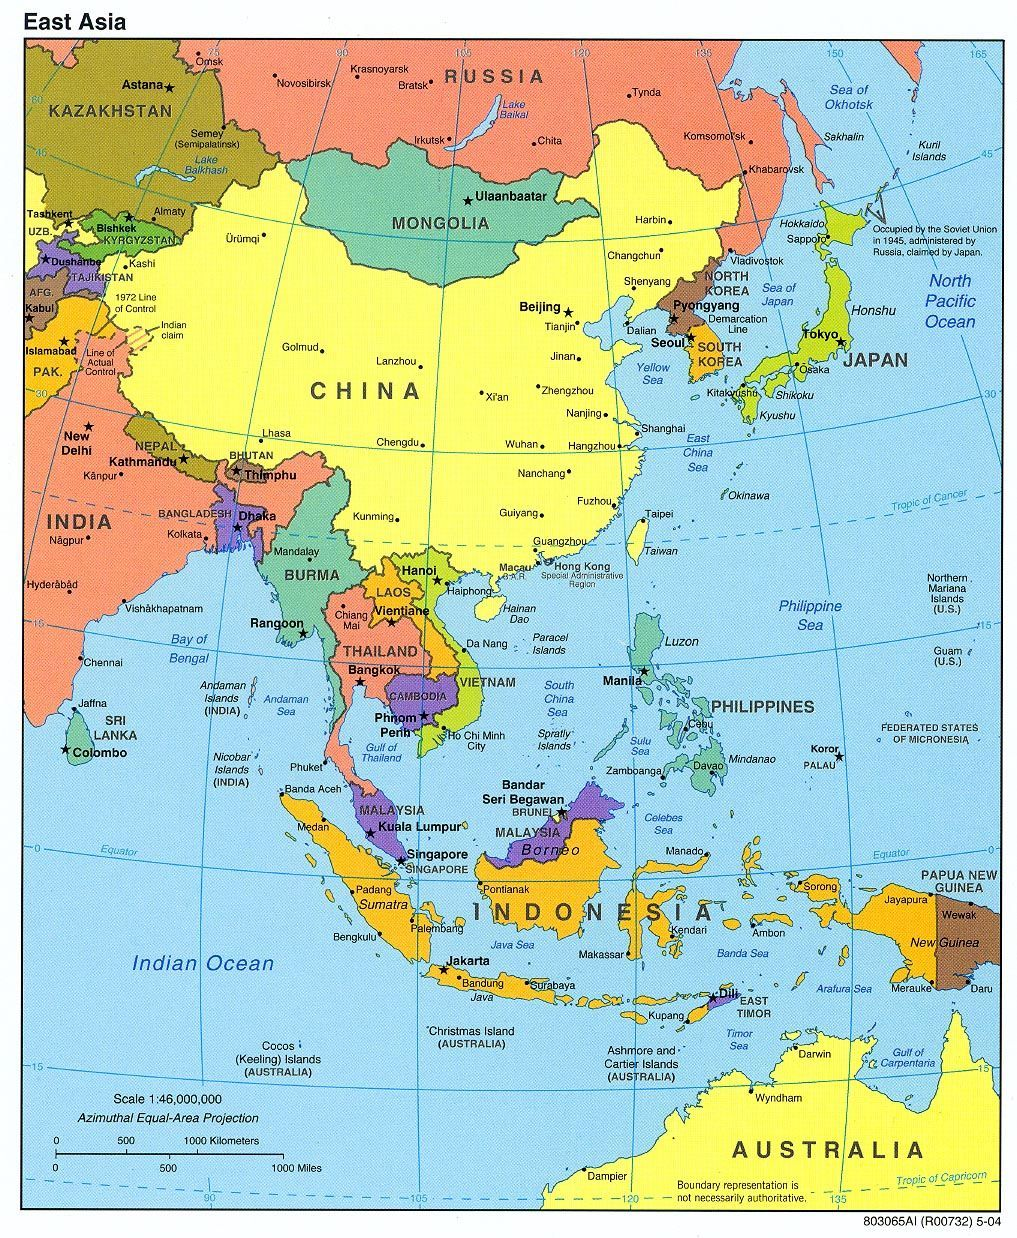 Sphinx reccomend Asian case change china conflict east identity in koreas taiwan